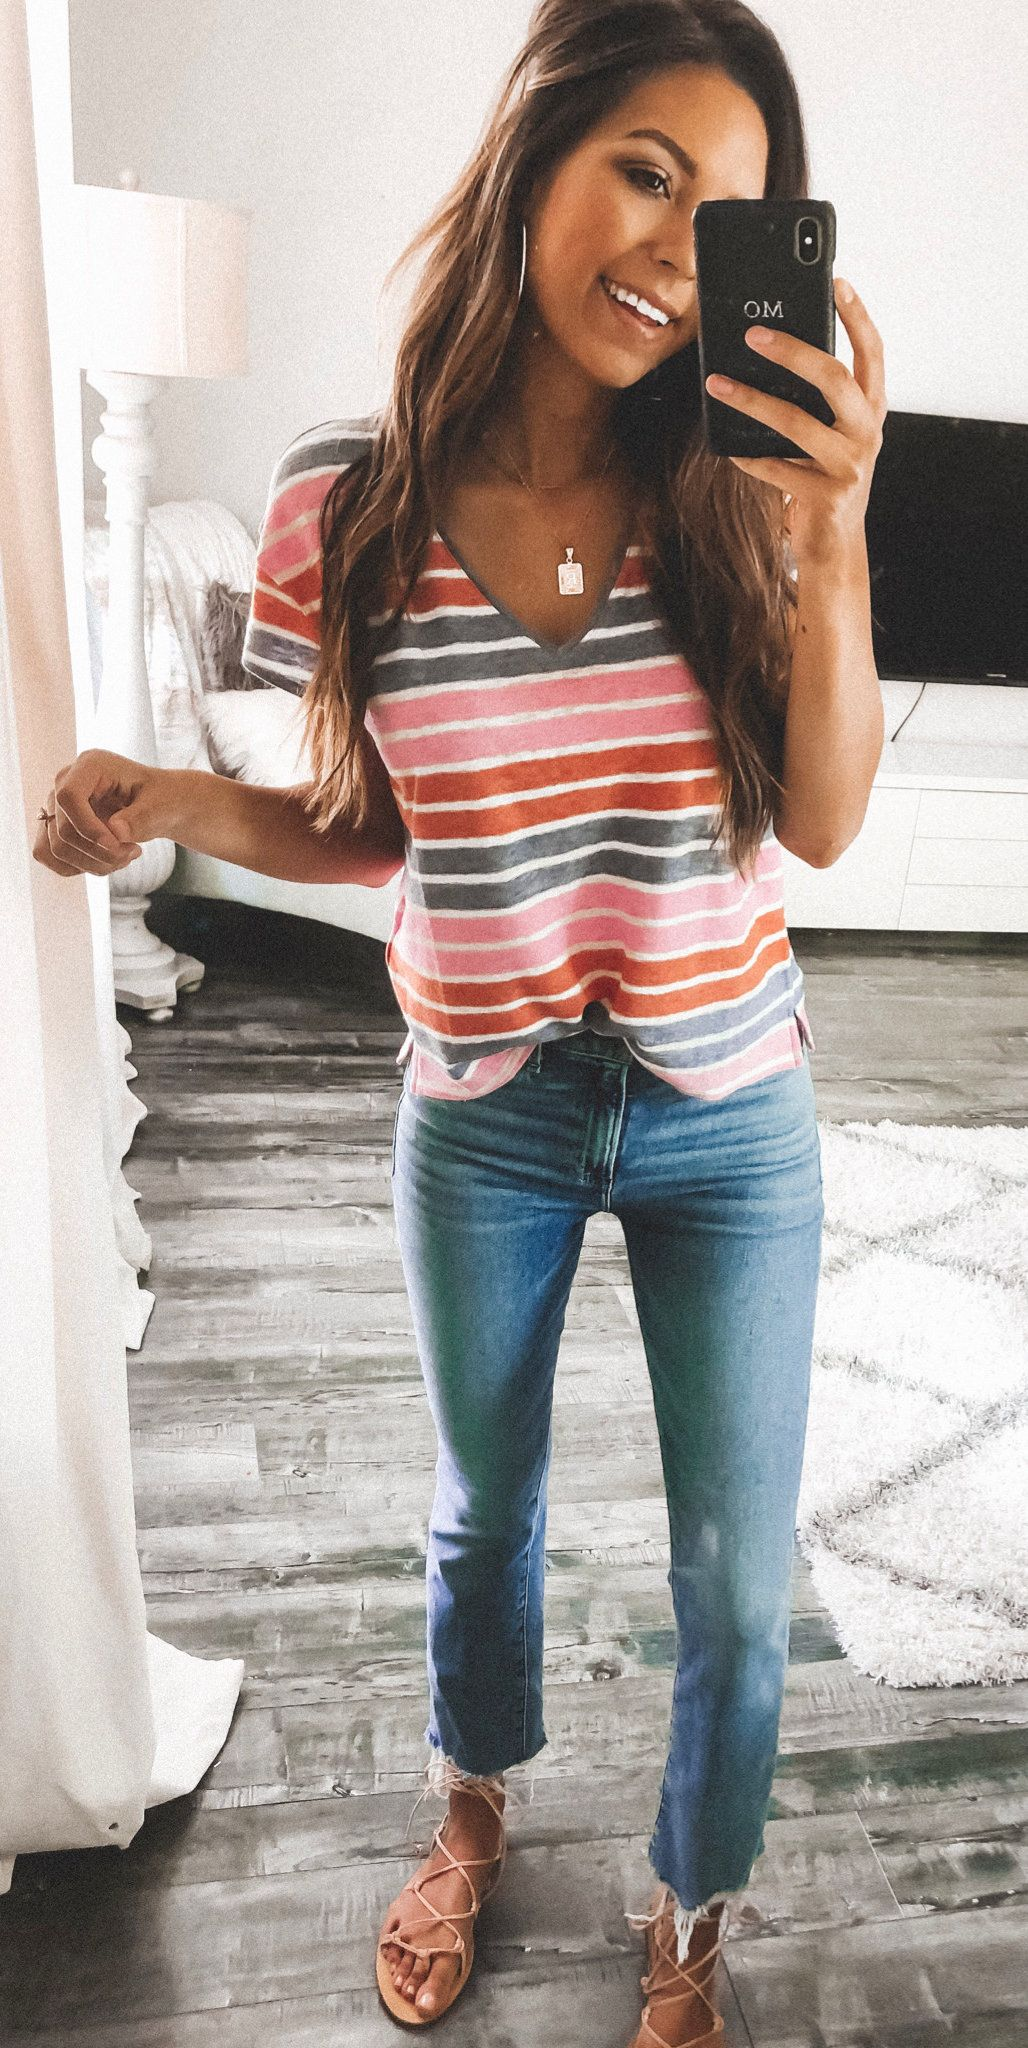 30+ Lovely Summer Outfits To Copy Right Now is part of fashion - Explore multicolored striped shirt and white longsleeved Vneck blousoe  Click to discover these 30+ lovely summer outfits to copy right now